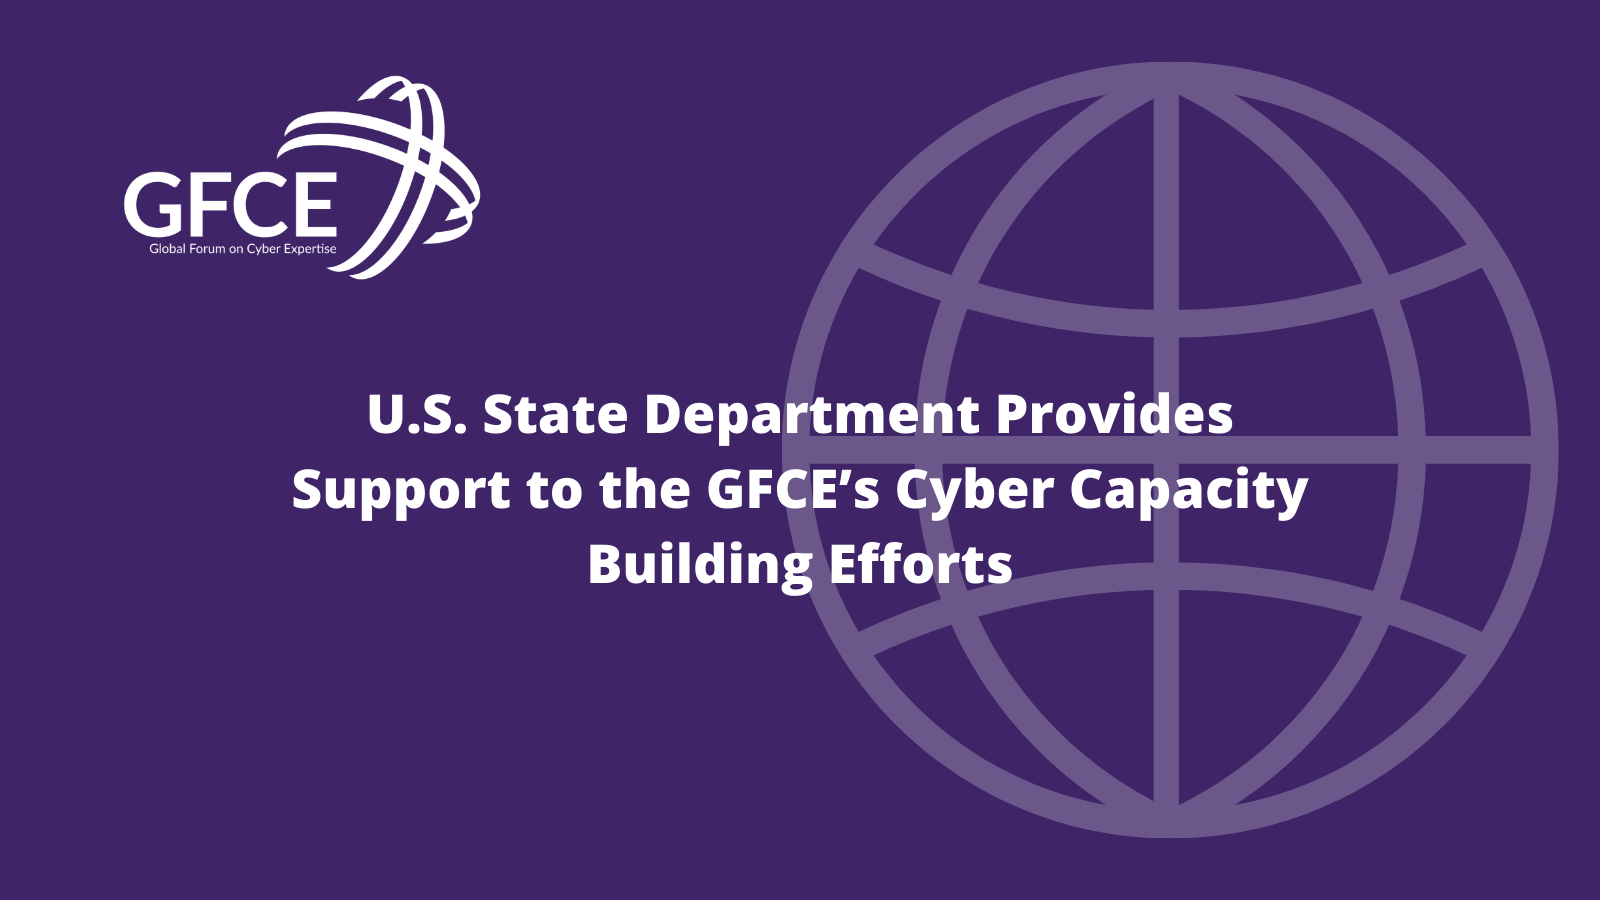 U.S. Department of State Provides Support to the GFCE's Cyber Capacity Building Efforts